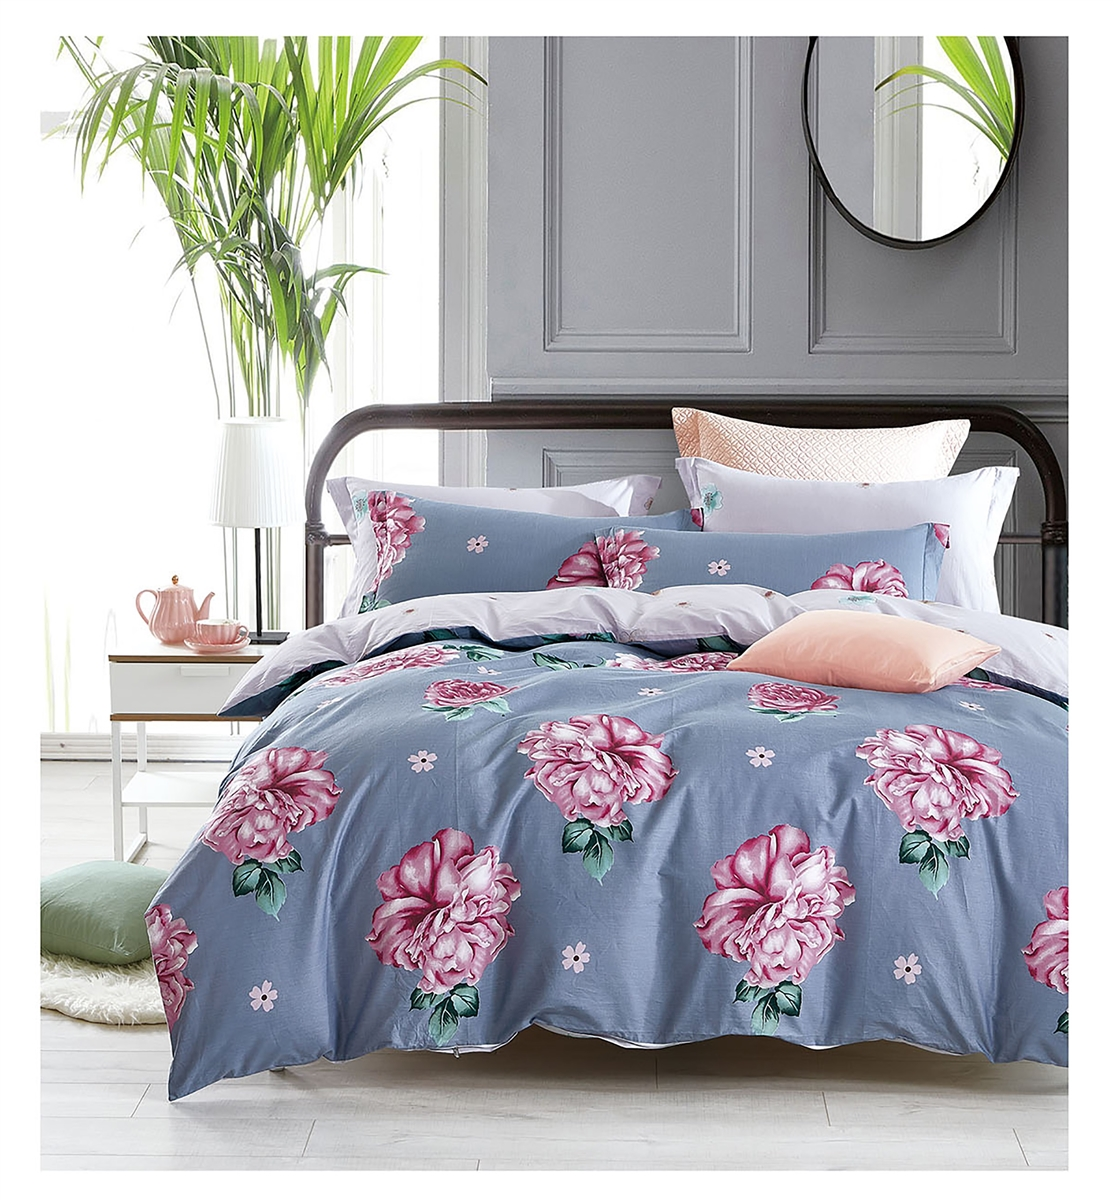 Sensations 8PC 100% Cotton Bedding Set